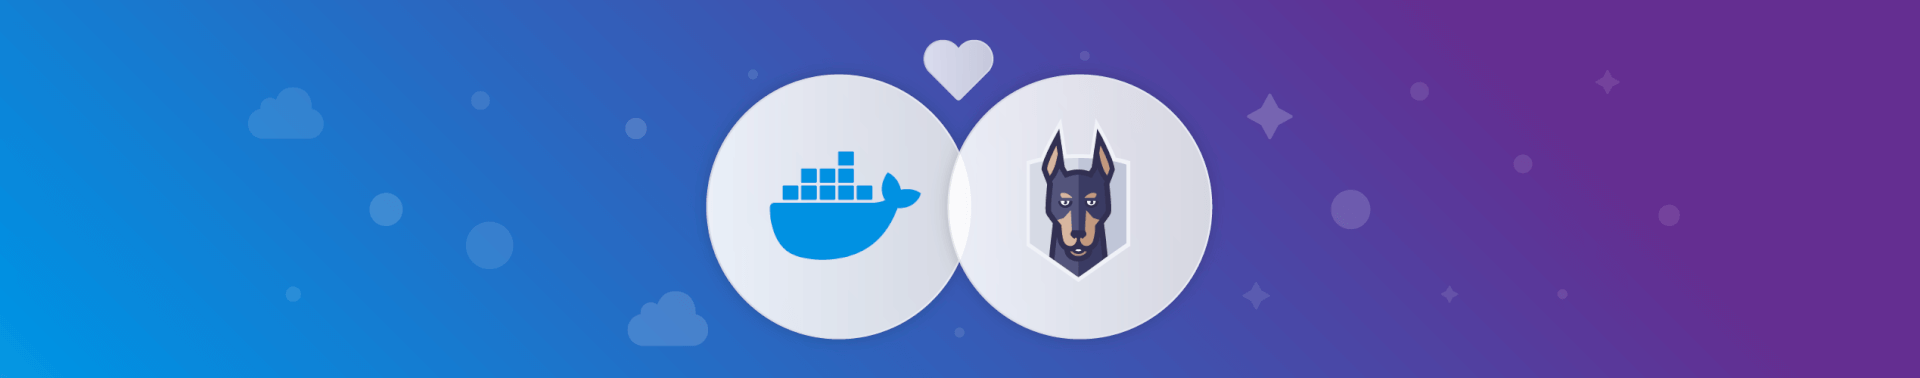 docker image security scanning with snyk